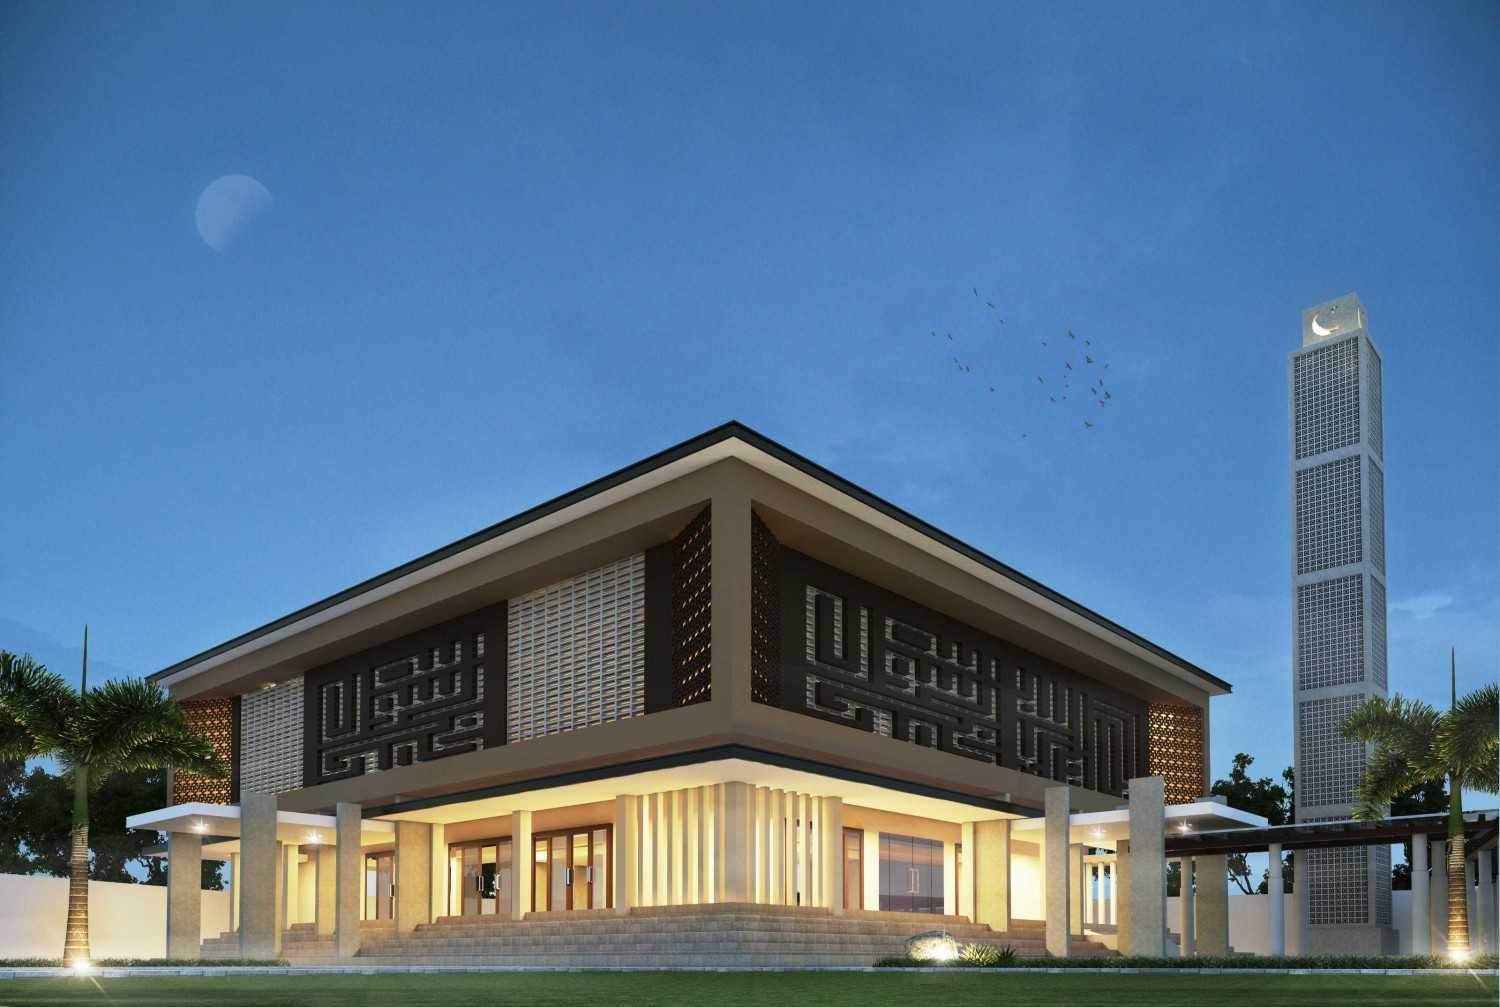 Arsatama Architect Pcnu Office  - Cilacap Cilacap, Central Java Cilacap, Central Java Masjid-Pcnucilacap  27047